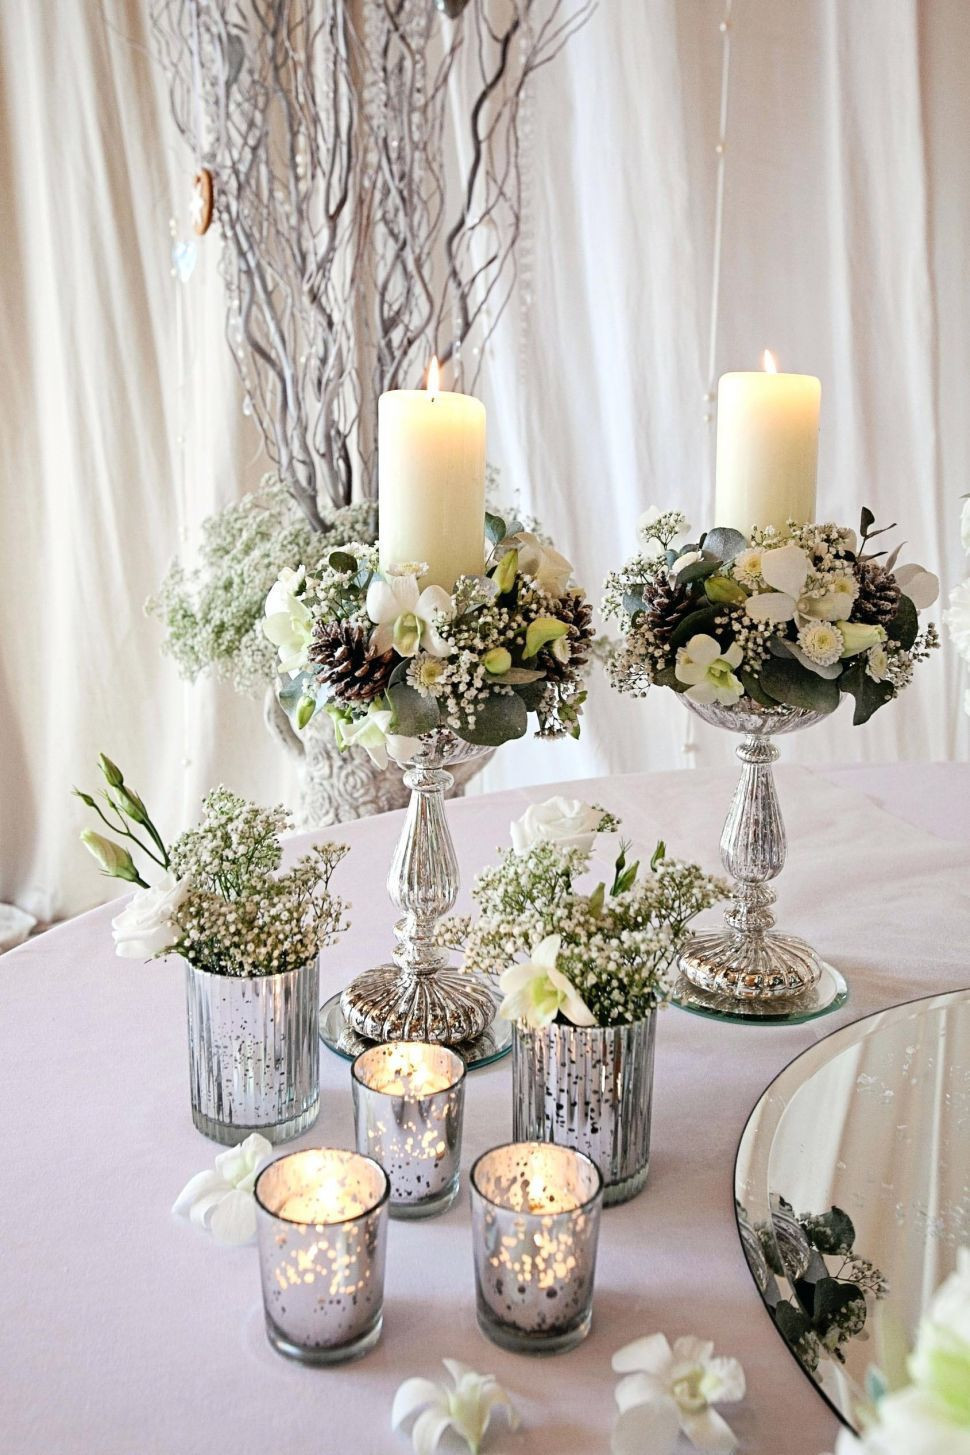 big flower vases for sale of big glass vase photograph articles with flower vases for sale tag for big glass vase photos living room vases wholesale new h vases big tall i 0d for